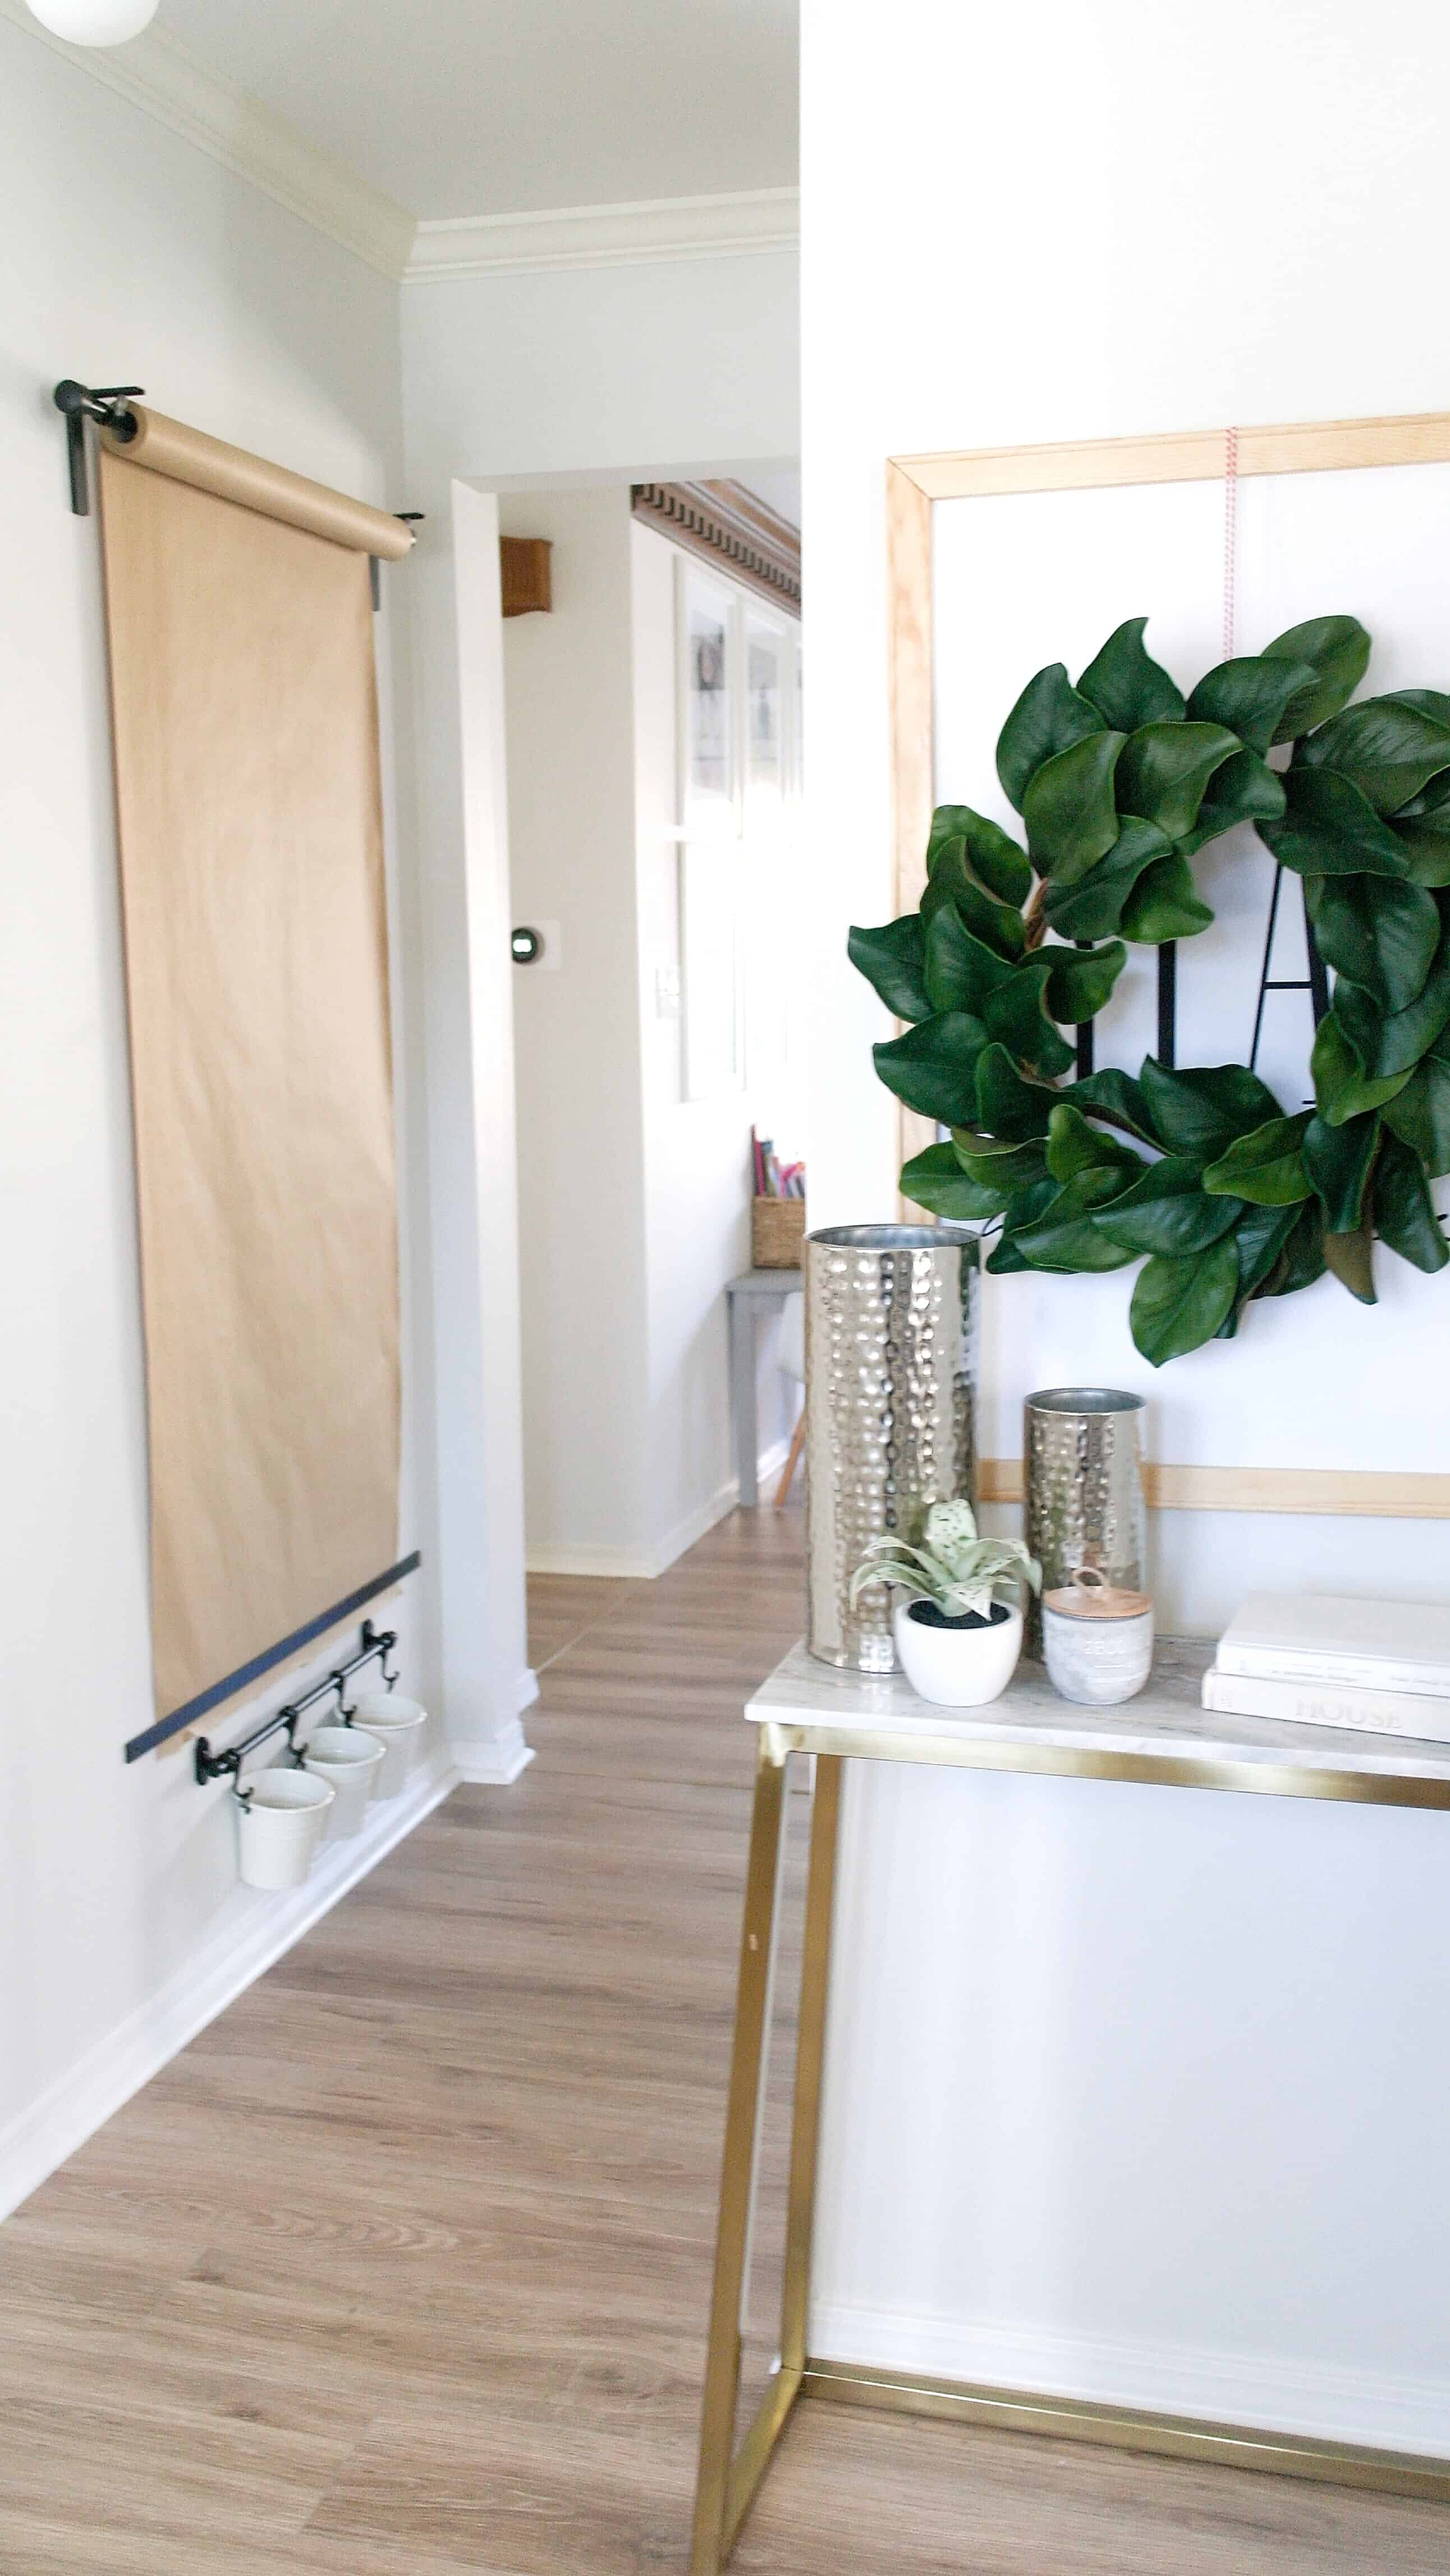 Entry way table with wreath and wall mounted paper roll and bins. Lifestyle blogger Arin Solange shares an Ikea Hack, how to create the perfect DIY Wall mounted Easel.